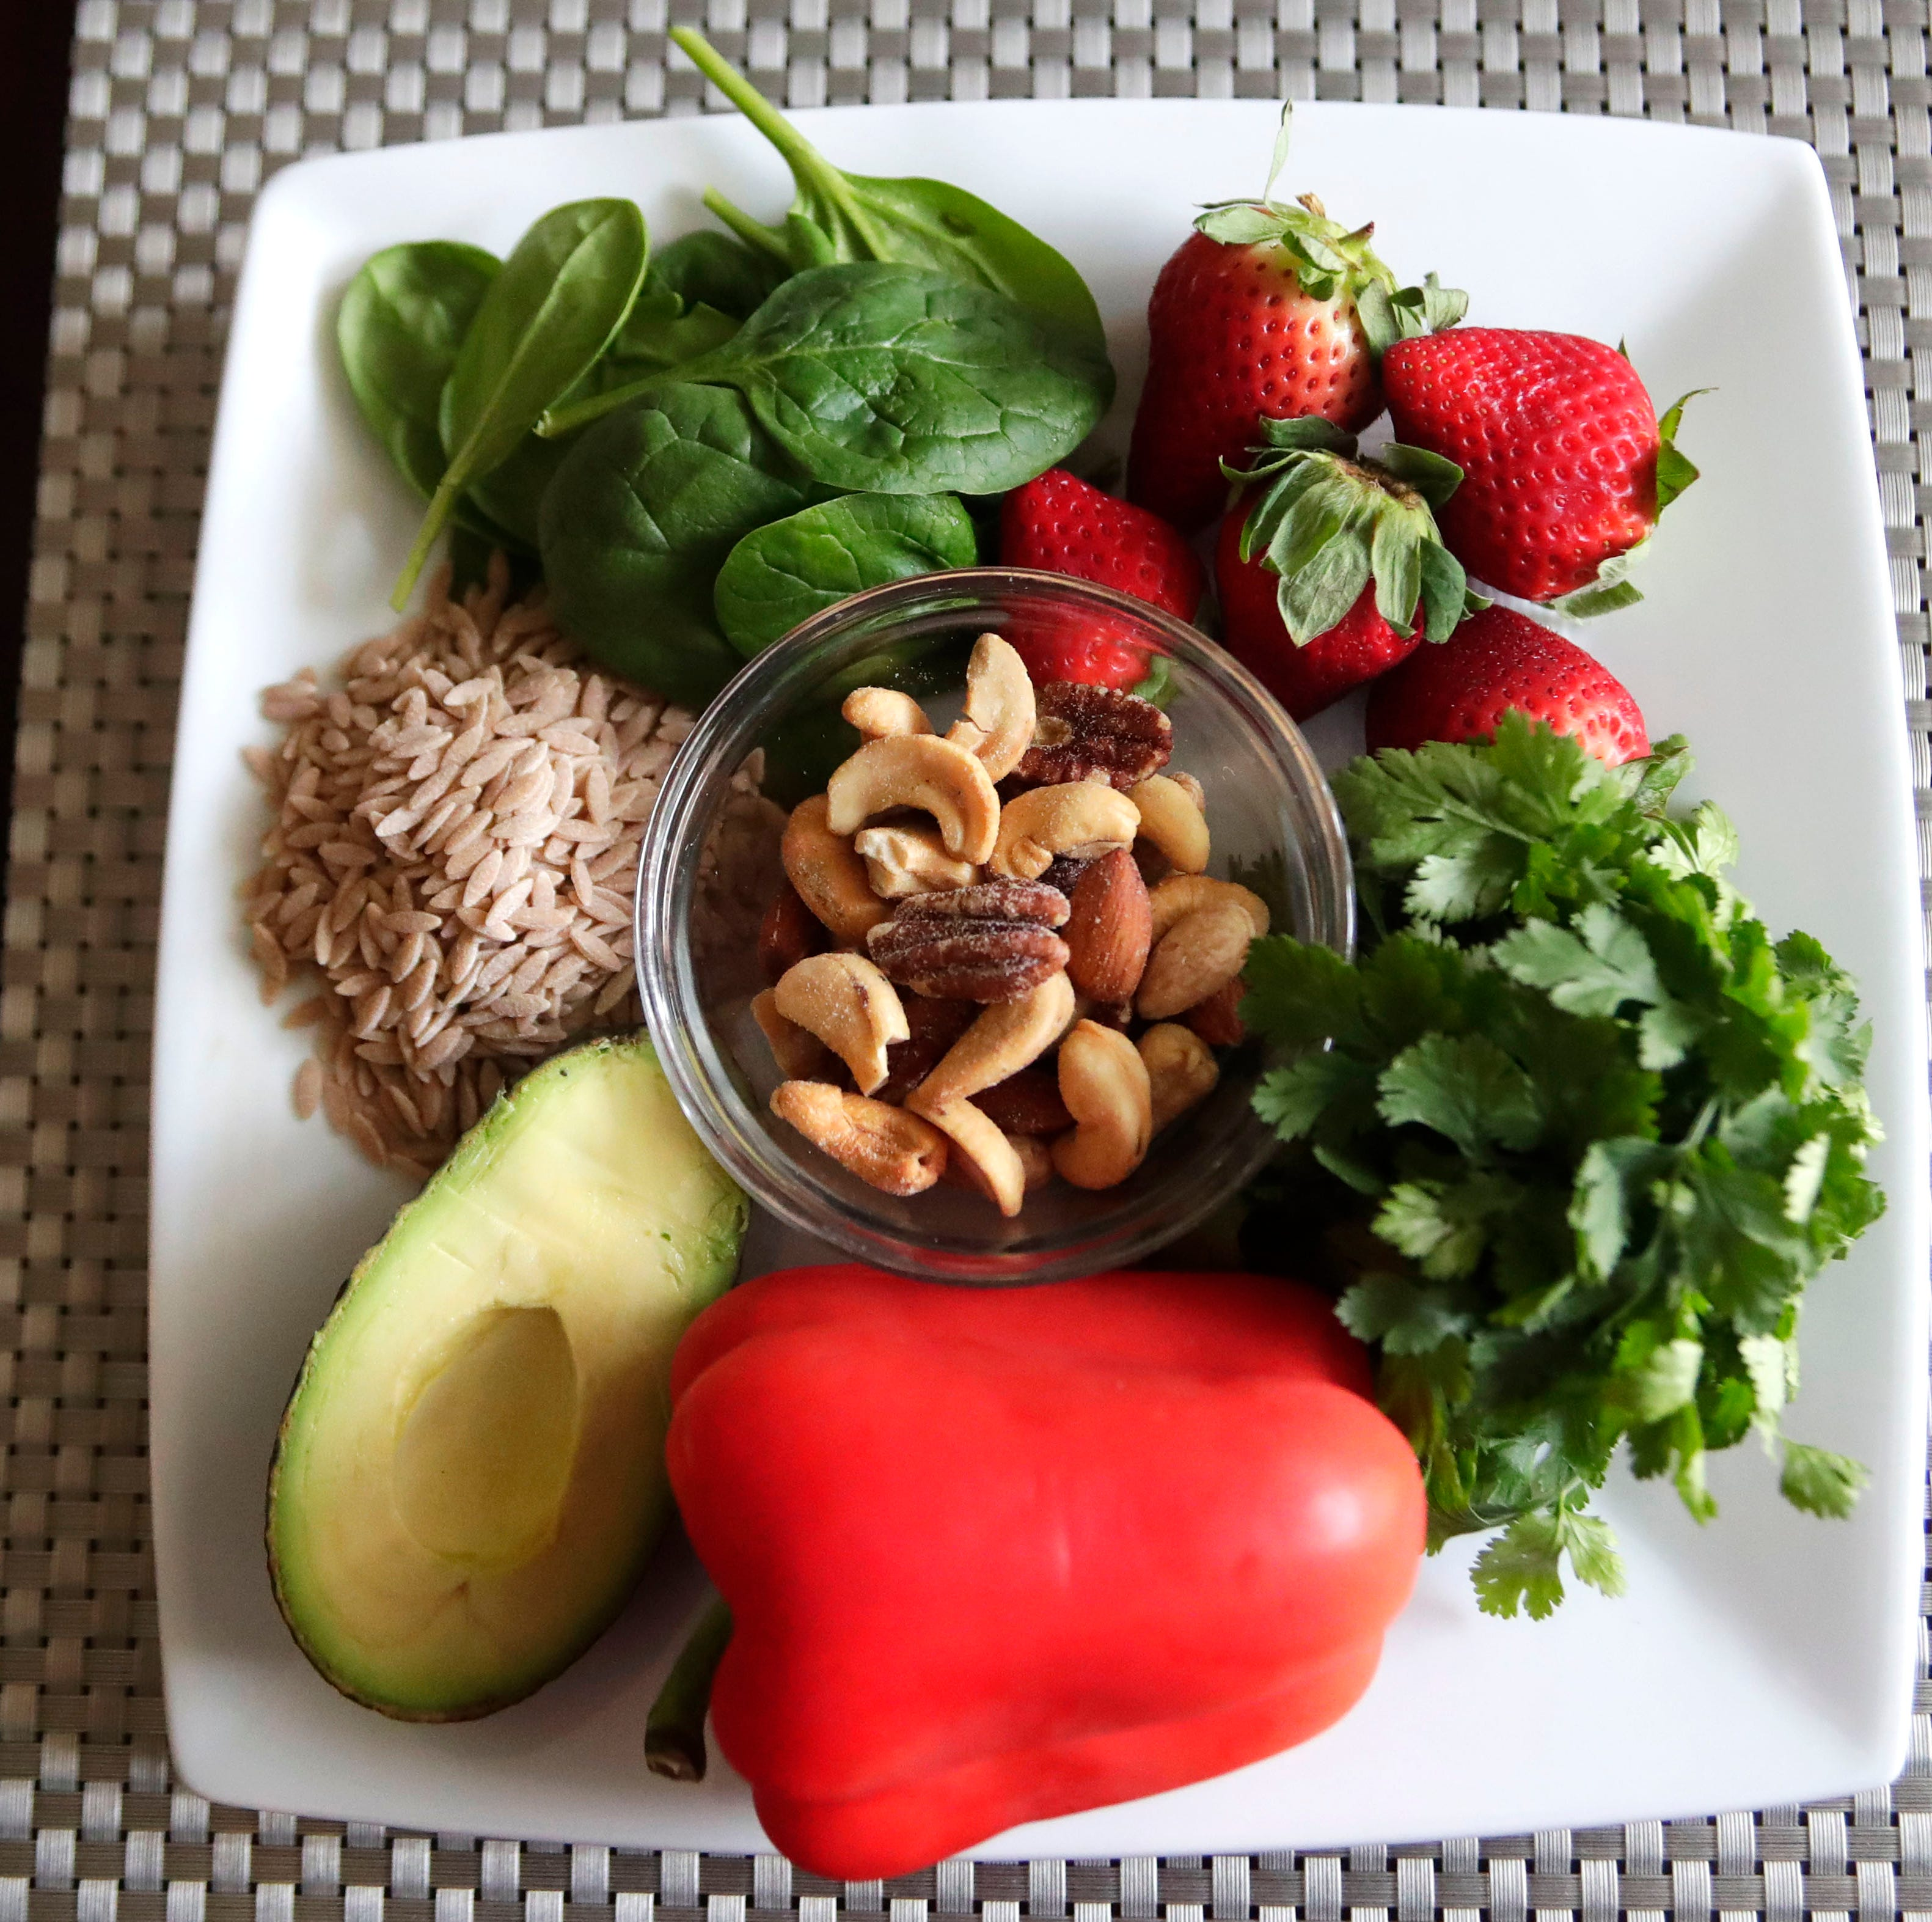 Eat more whole, plant-based food for a healthy heart